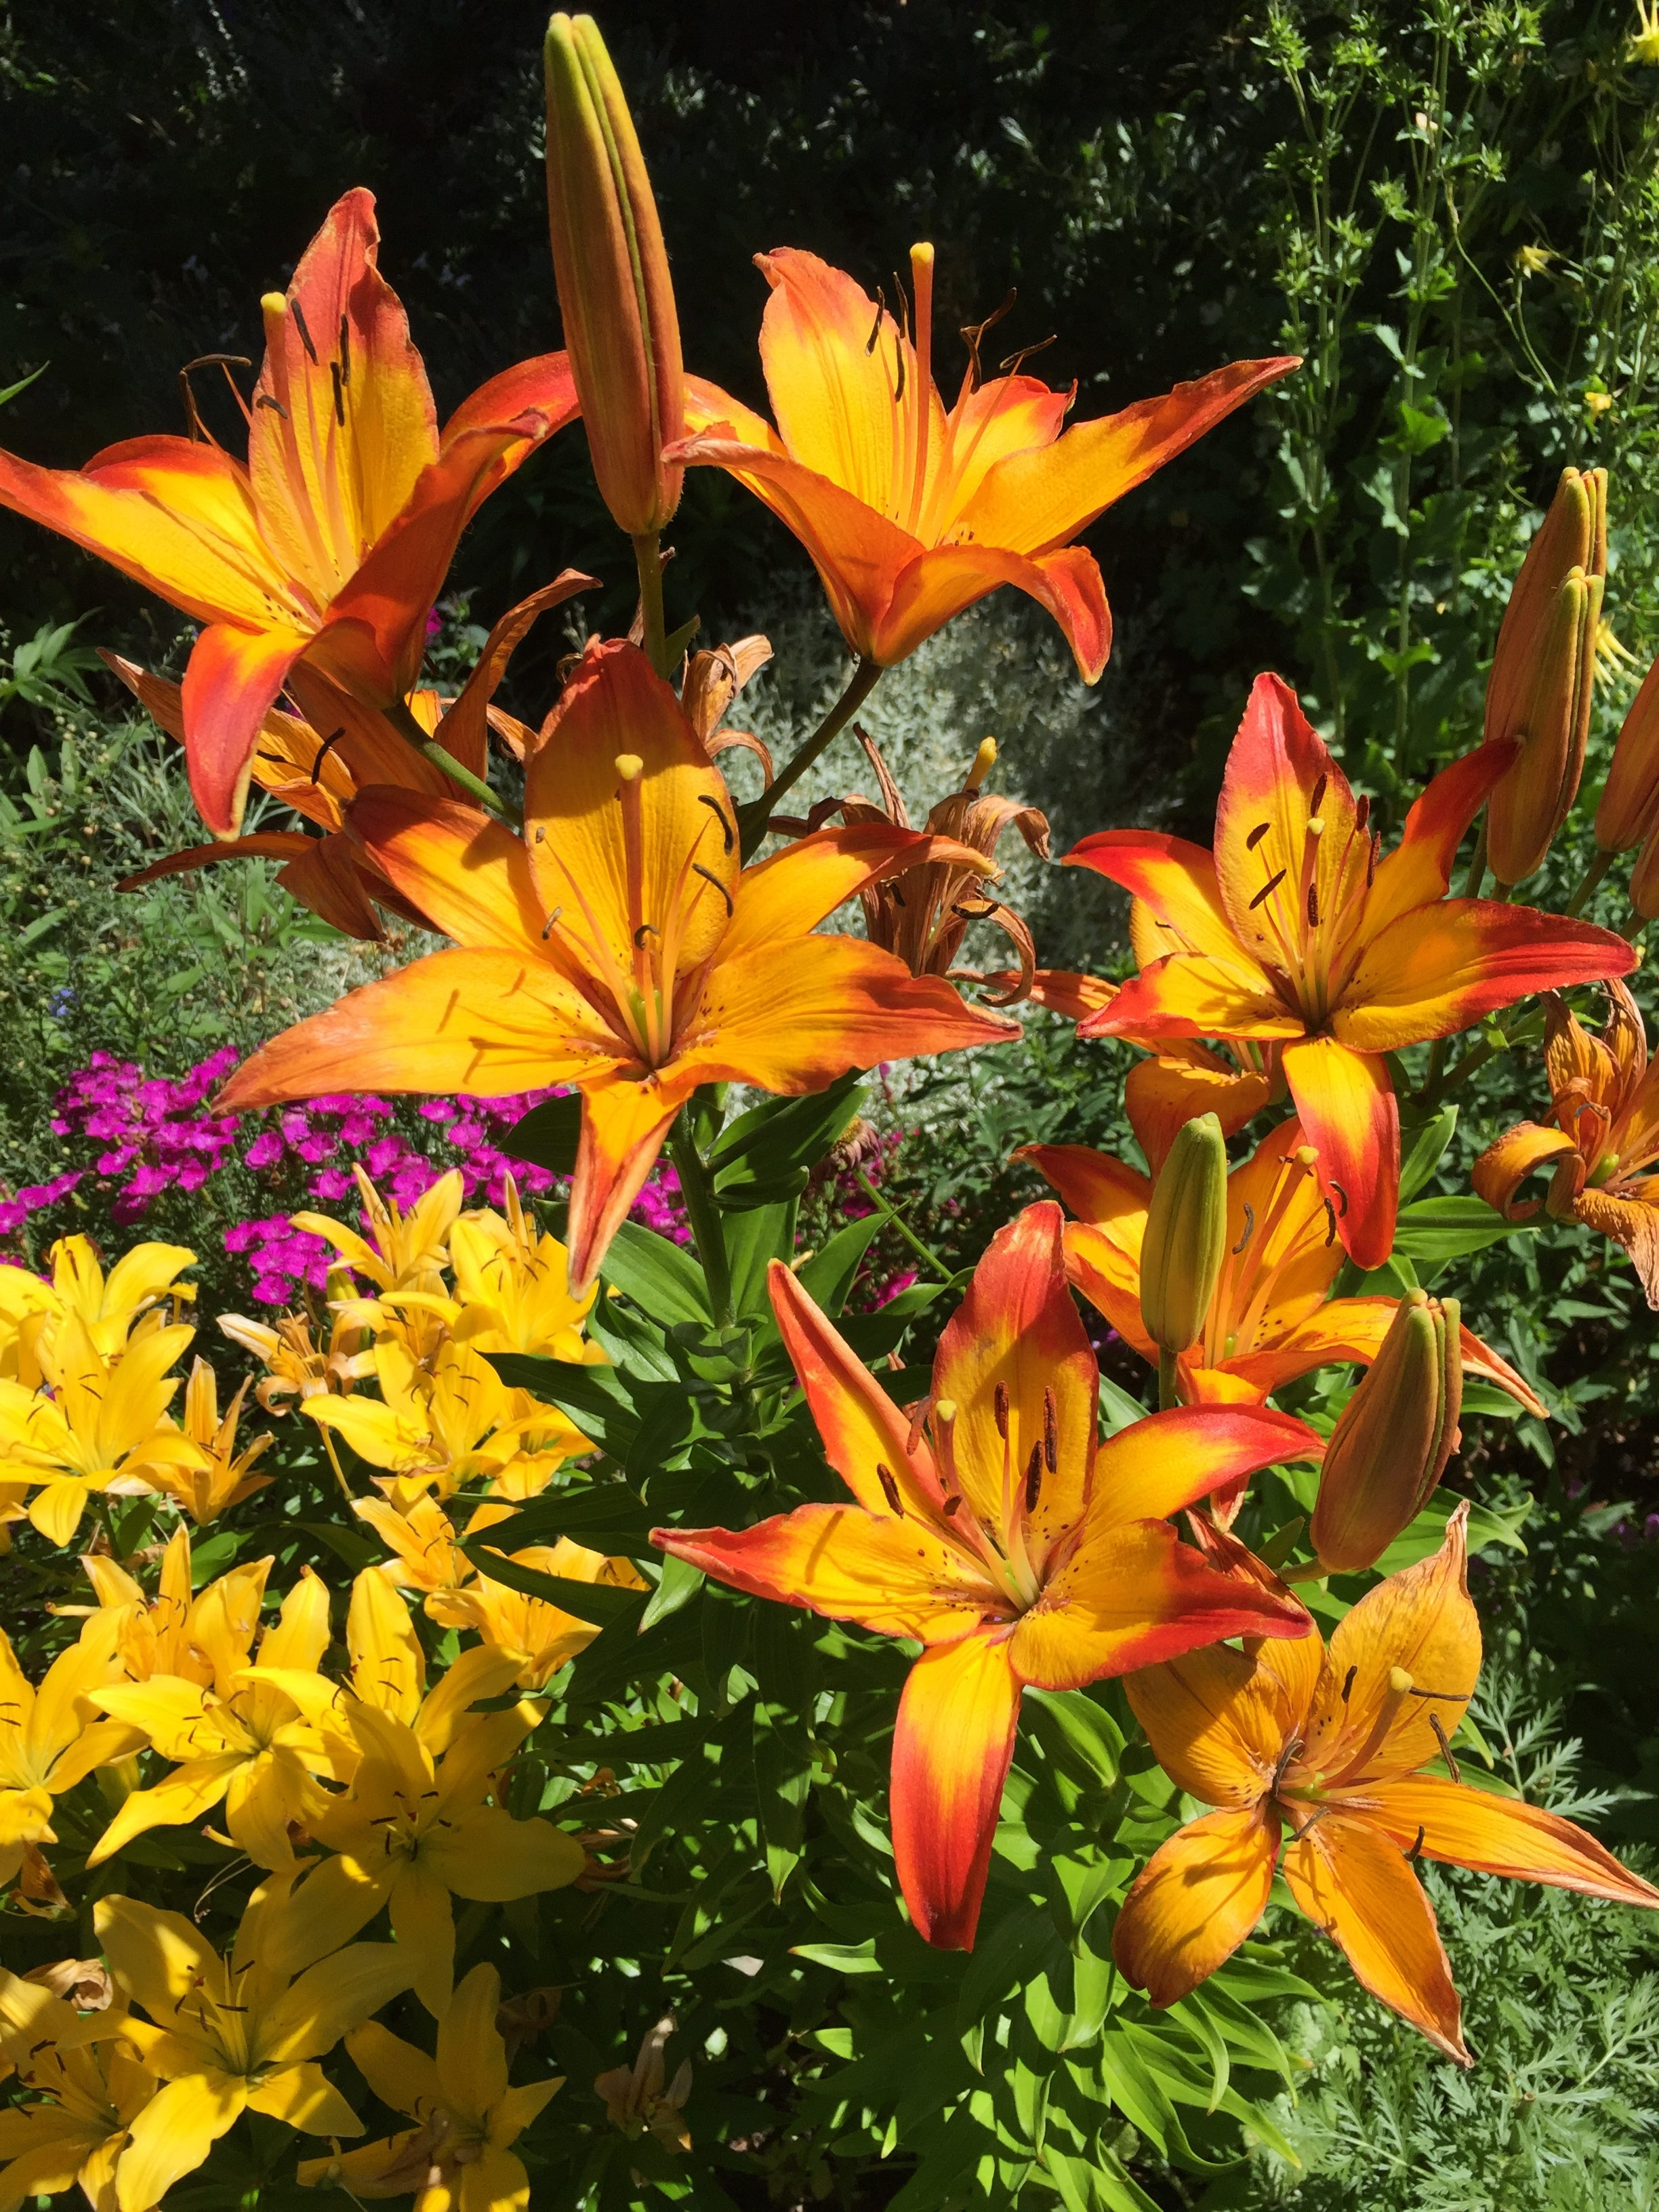 Border lilies